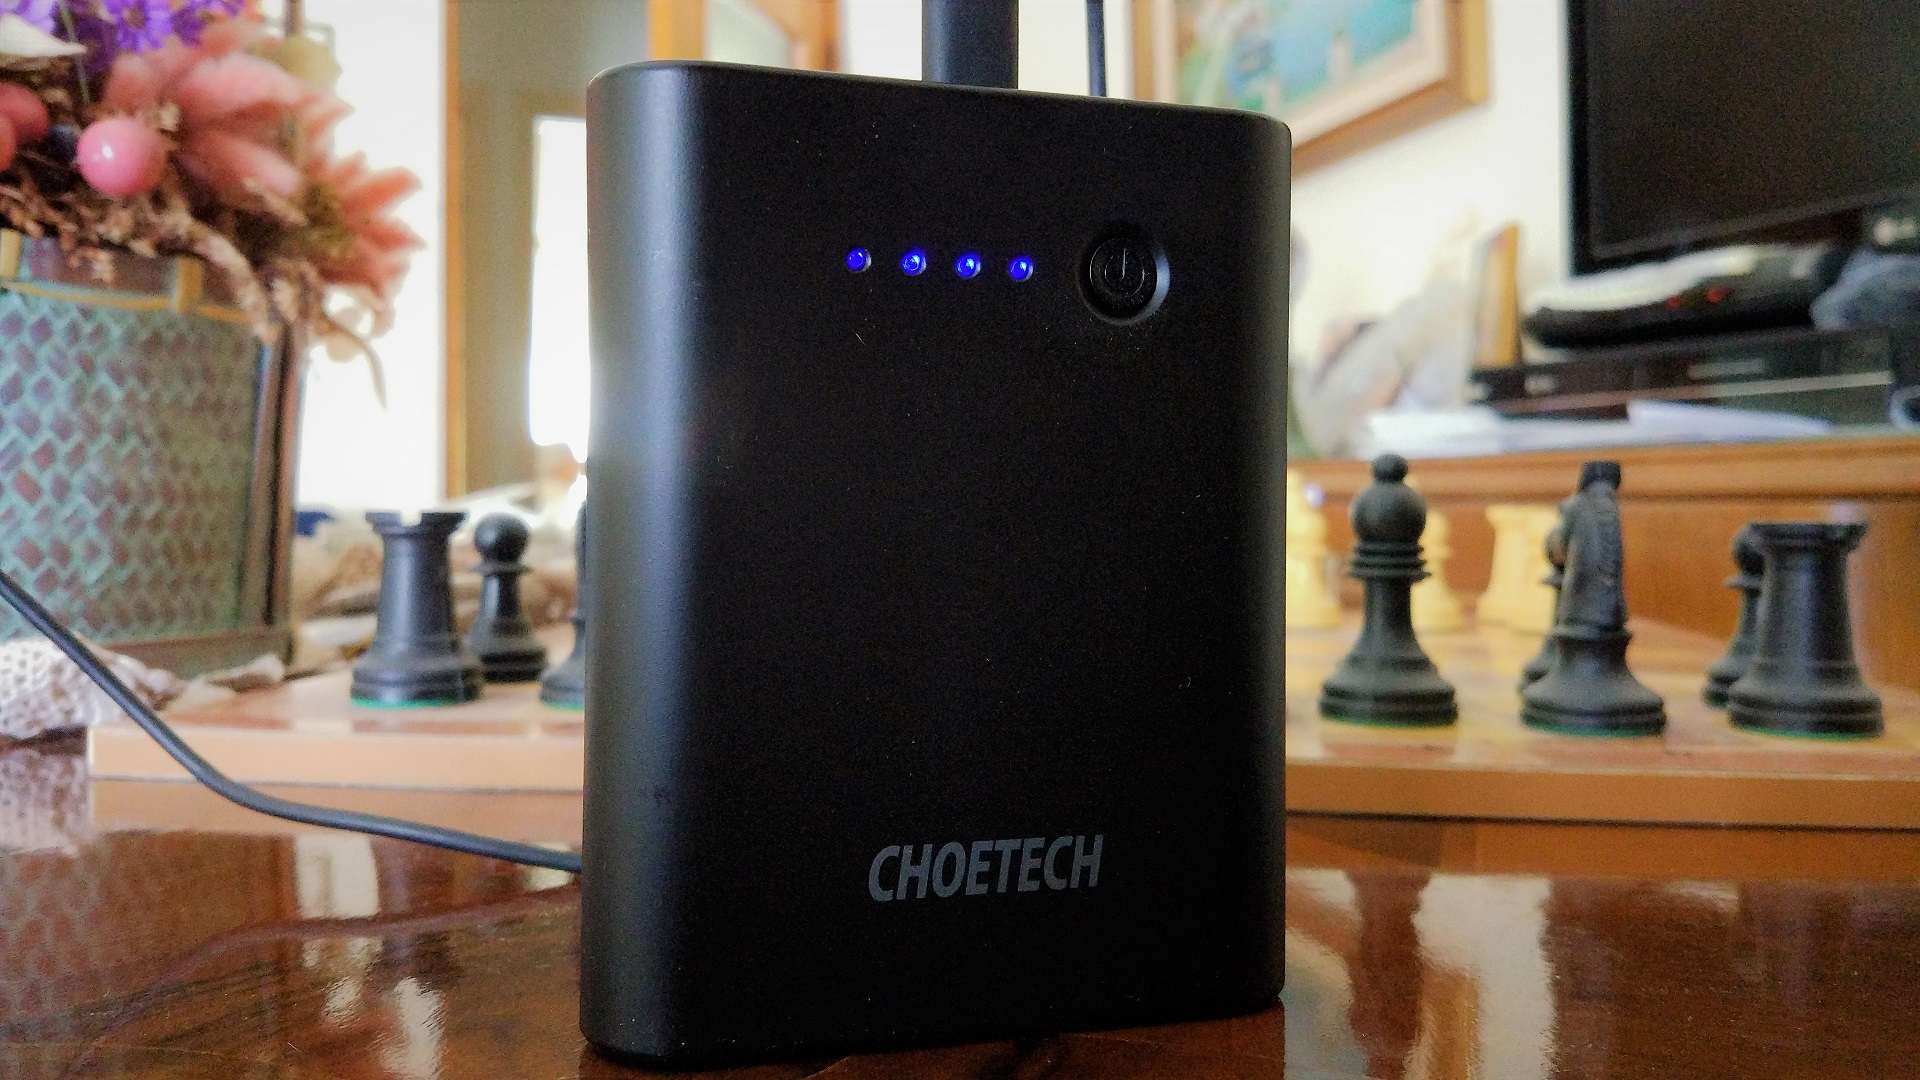 Choetech B618T power bank Quick Charge 3